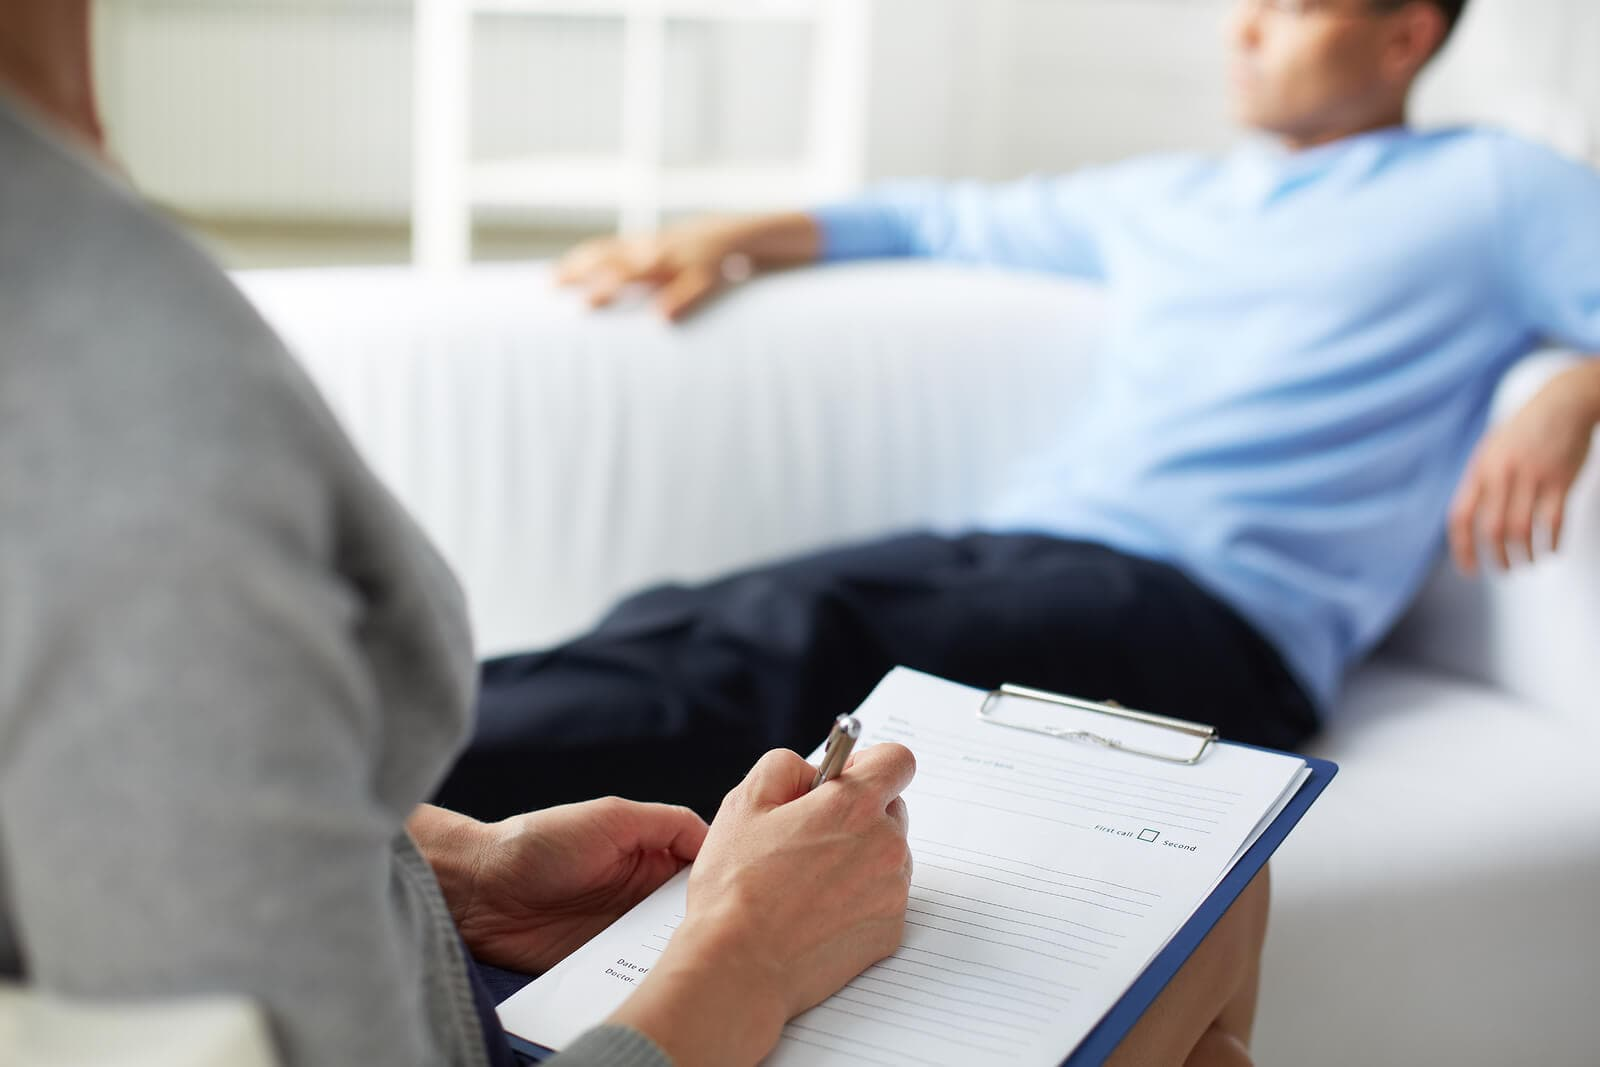 therapy to treat bipolar disorder